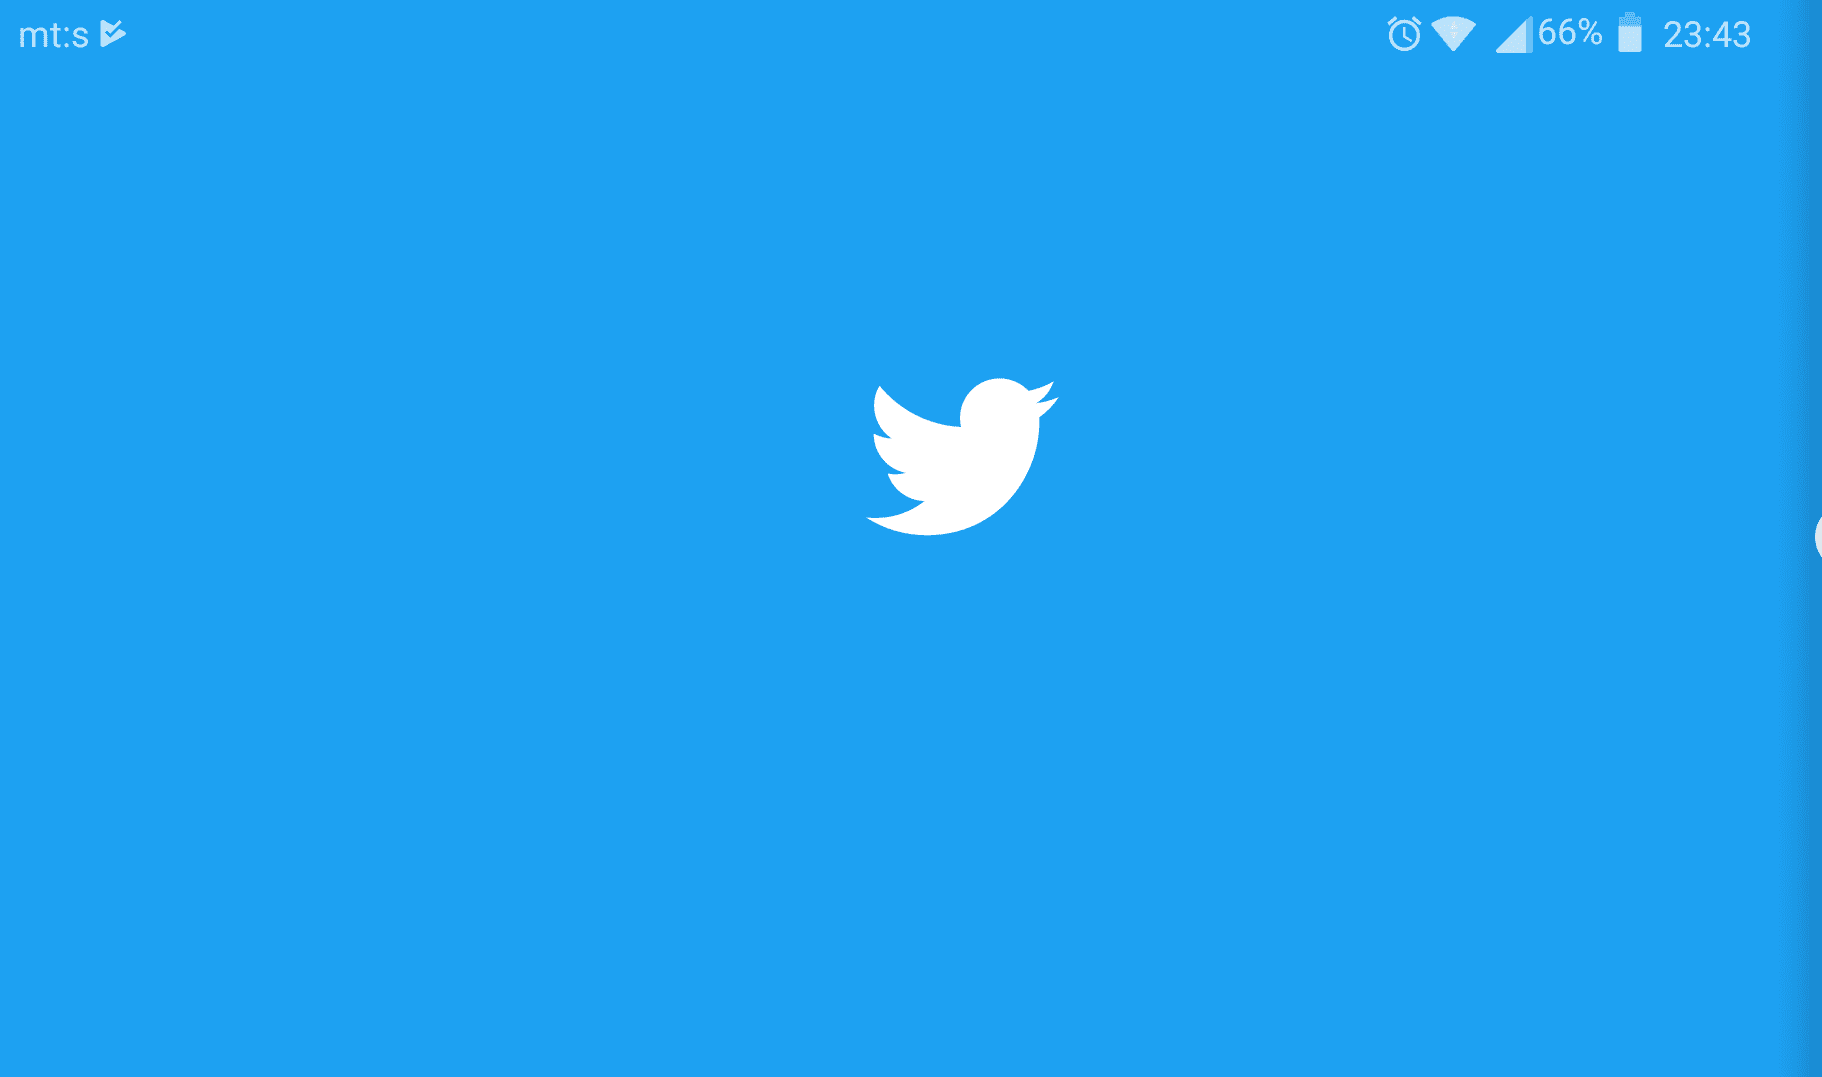 twitter android widget doesn't update